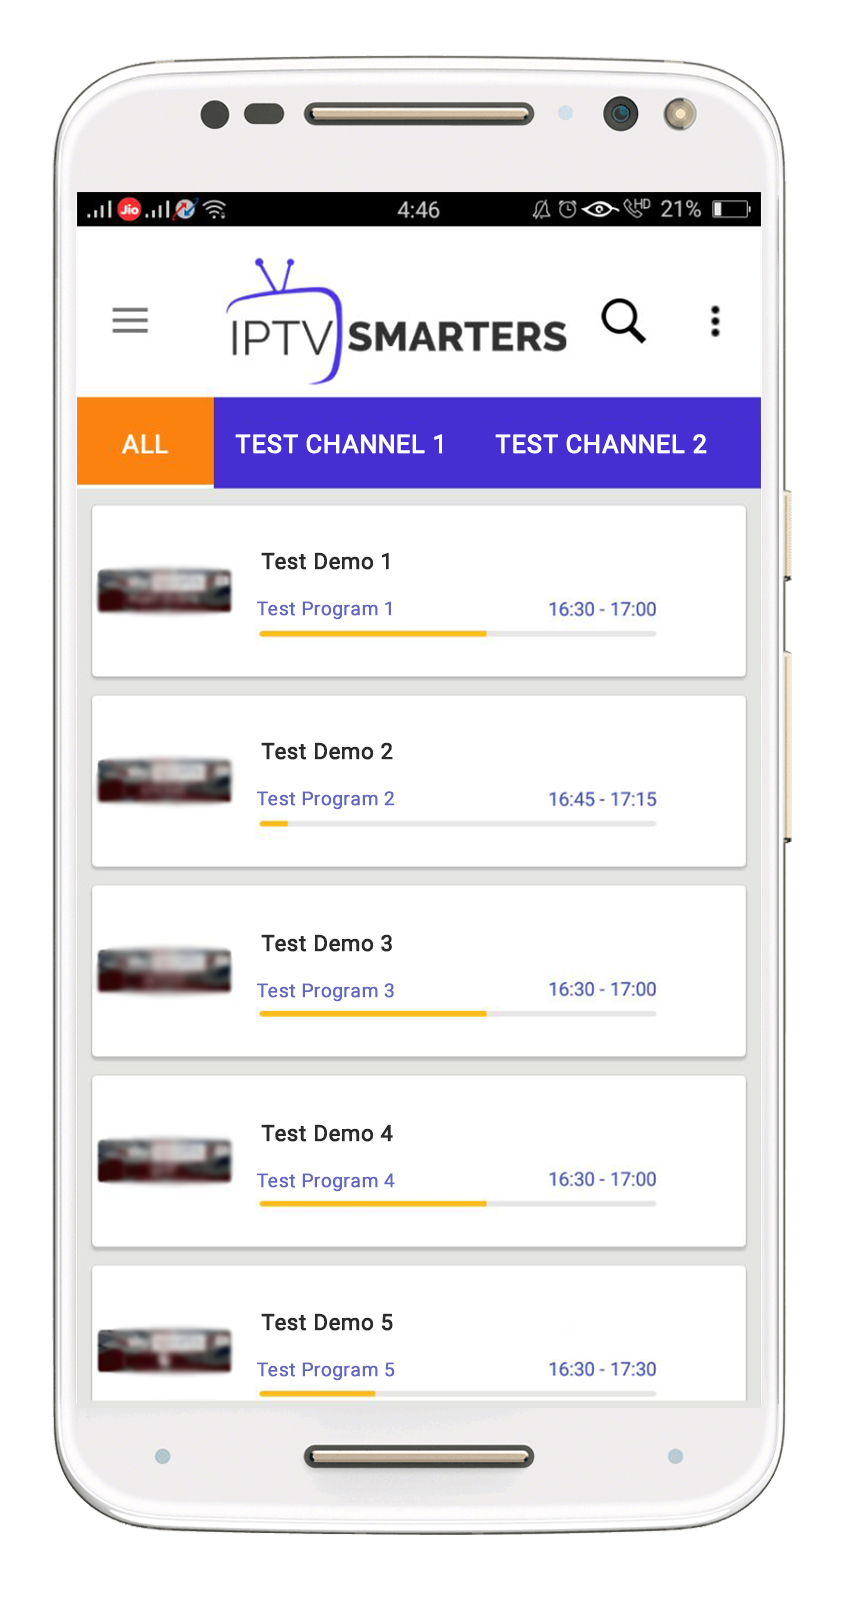 Hi Just would like to share we are offering an Android App for IPTV